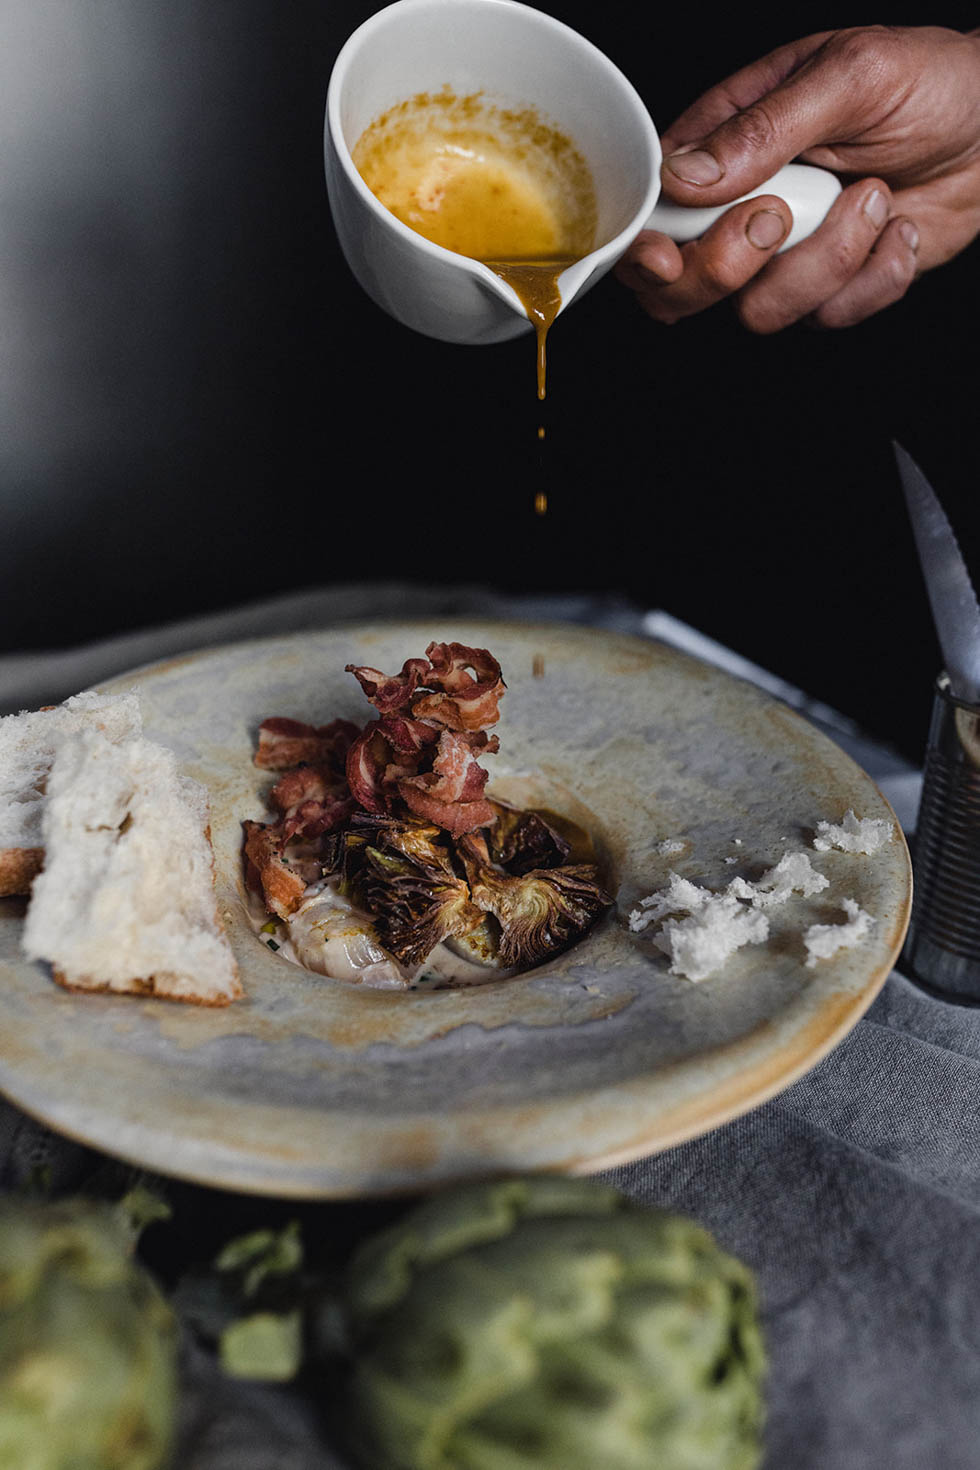 Together with top photographer Raquel Benito, we developed the new photo image for Kabusha Restaurant. We needed to show the proximity food and grilled expertise. Therefore we made dark, strong images, using fire and texture.